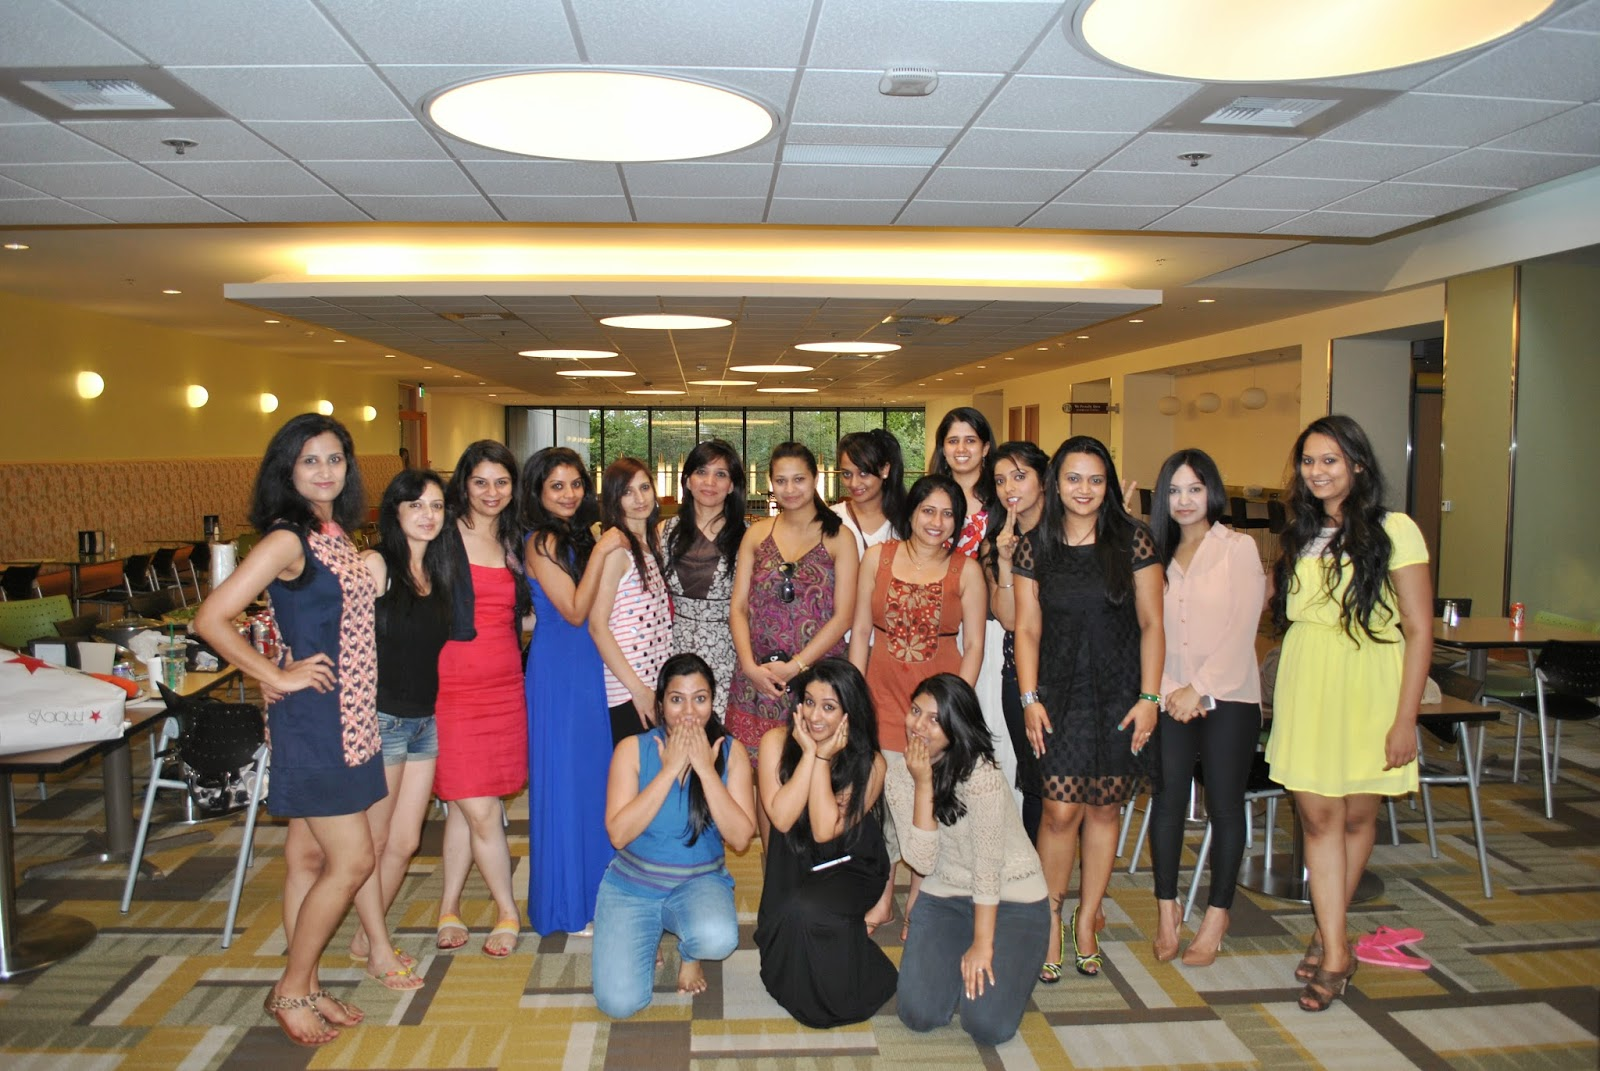 Mrs India Washington USA 2014, beauty pageant, Practice sessions for an beauty pageant , behind the scenes, beautiful ladies